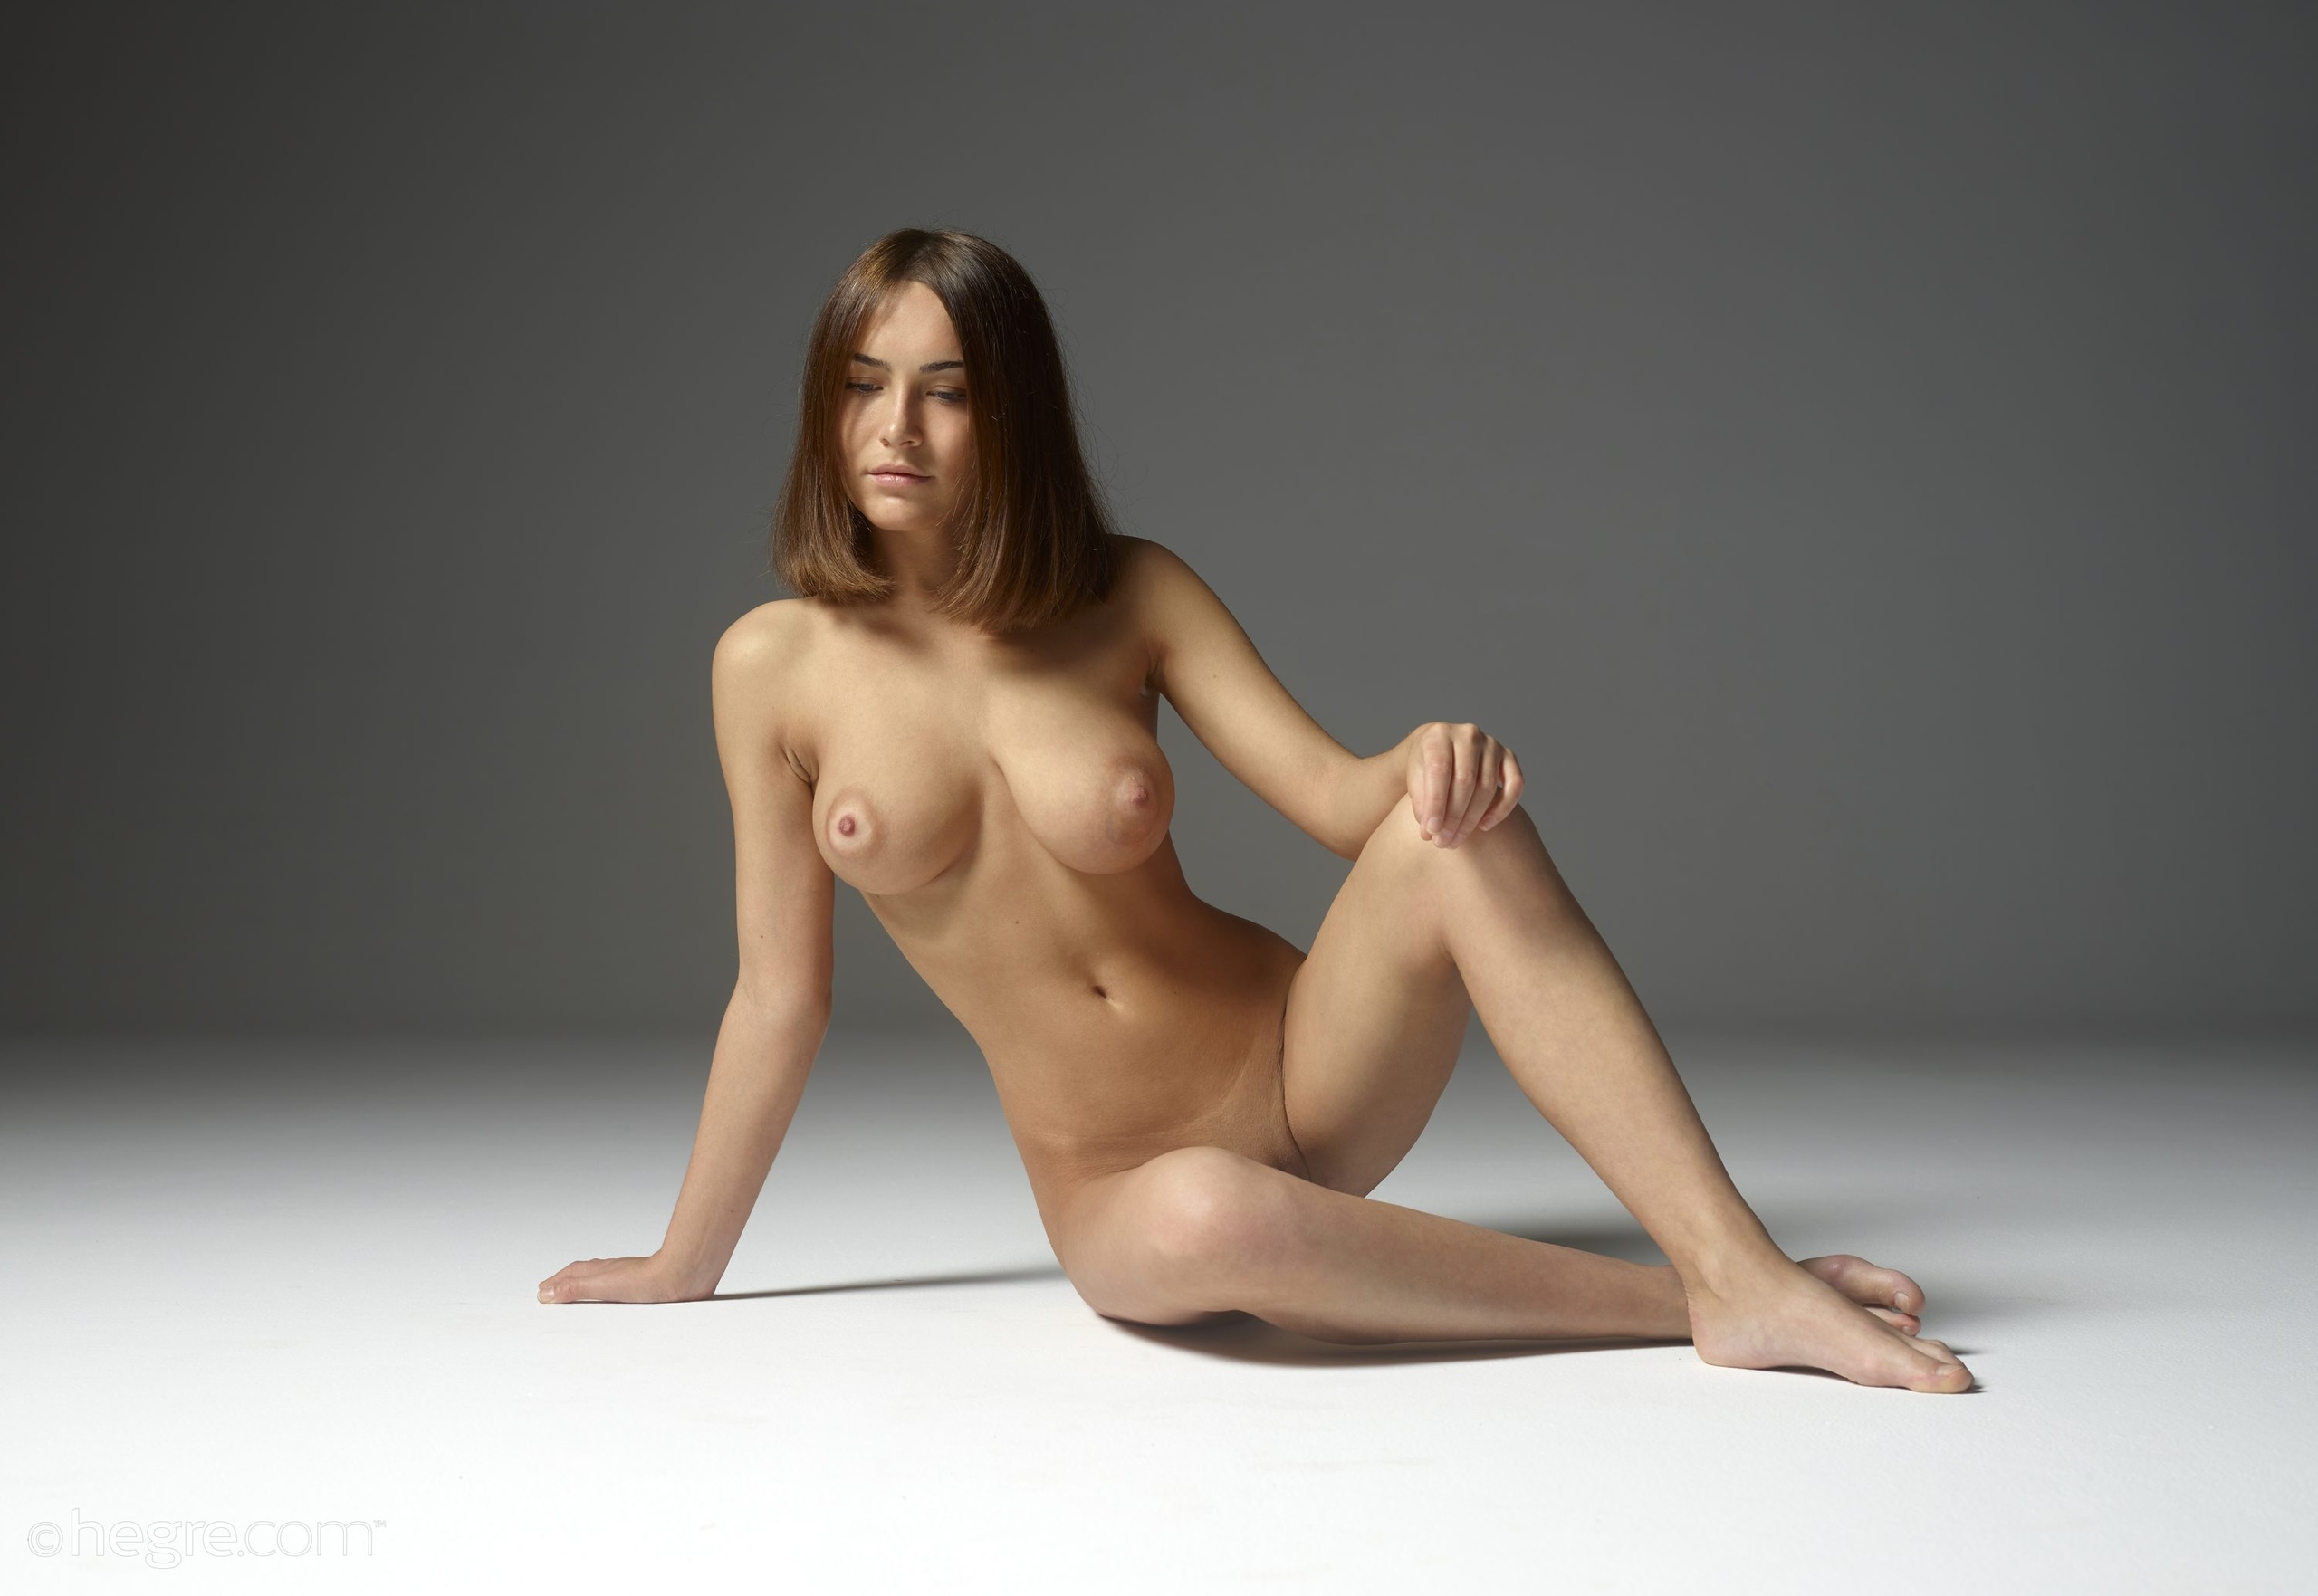 Life Drawing With Nude Model In Studio With Artists, Merging Rivers Artist Guild